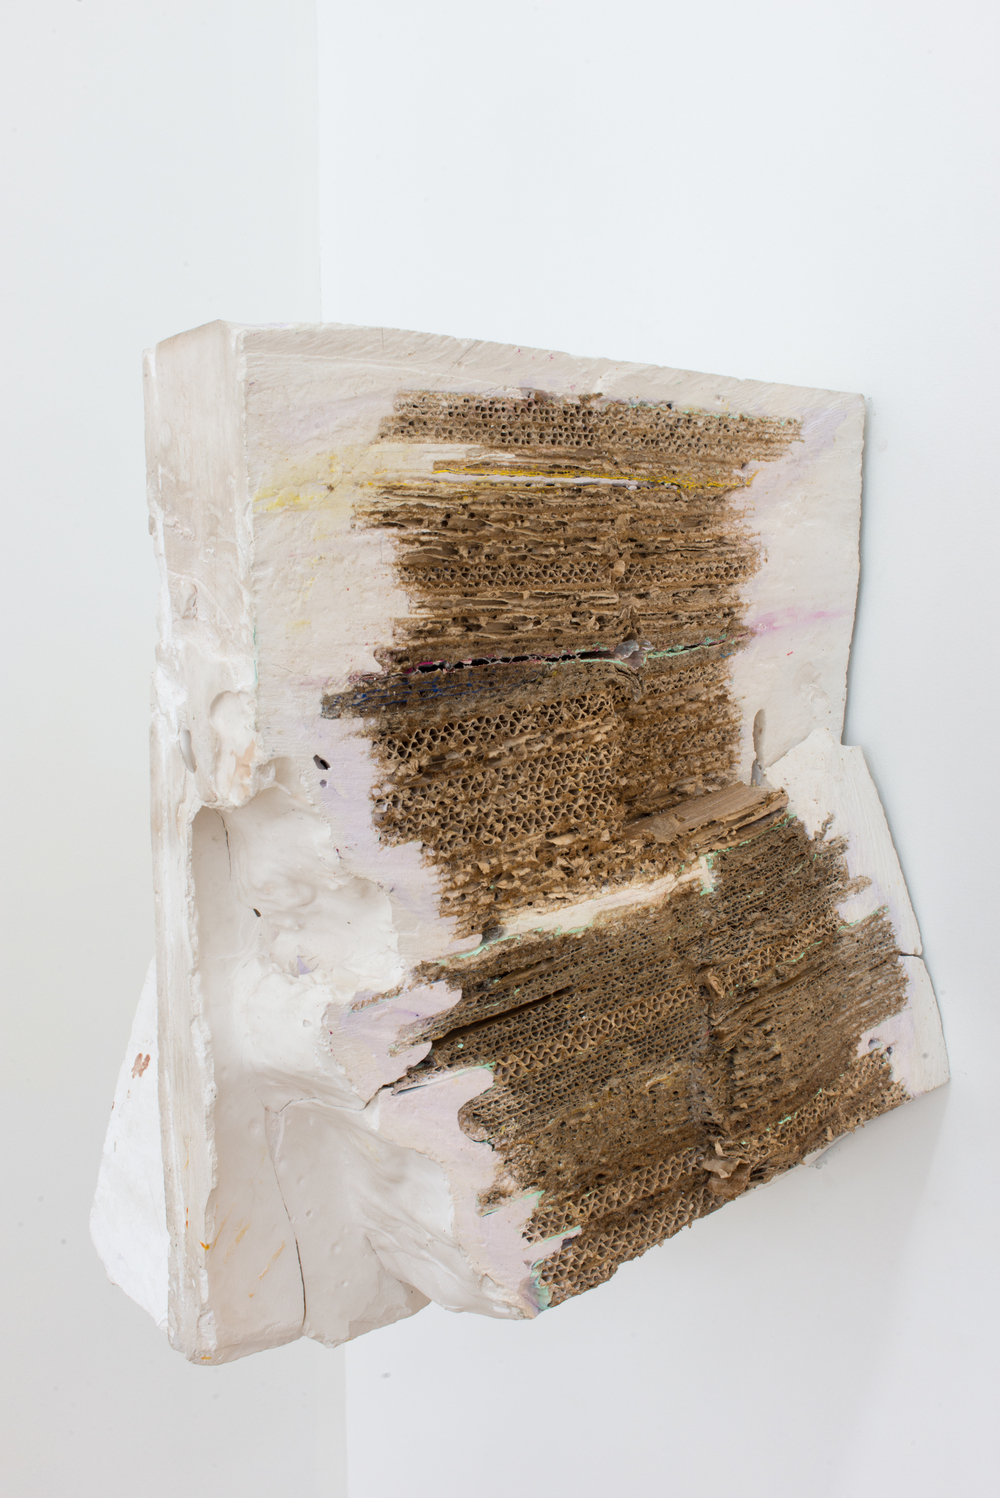 John Henry Donner   Untitled ,  2016  Plaster, cardboard, latex, bondo, found objects 36 x 22 x 24 inches (dimensions variable)